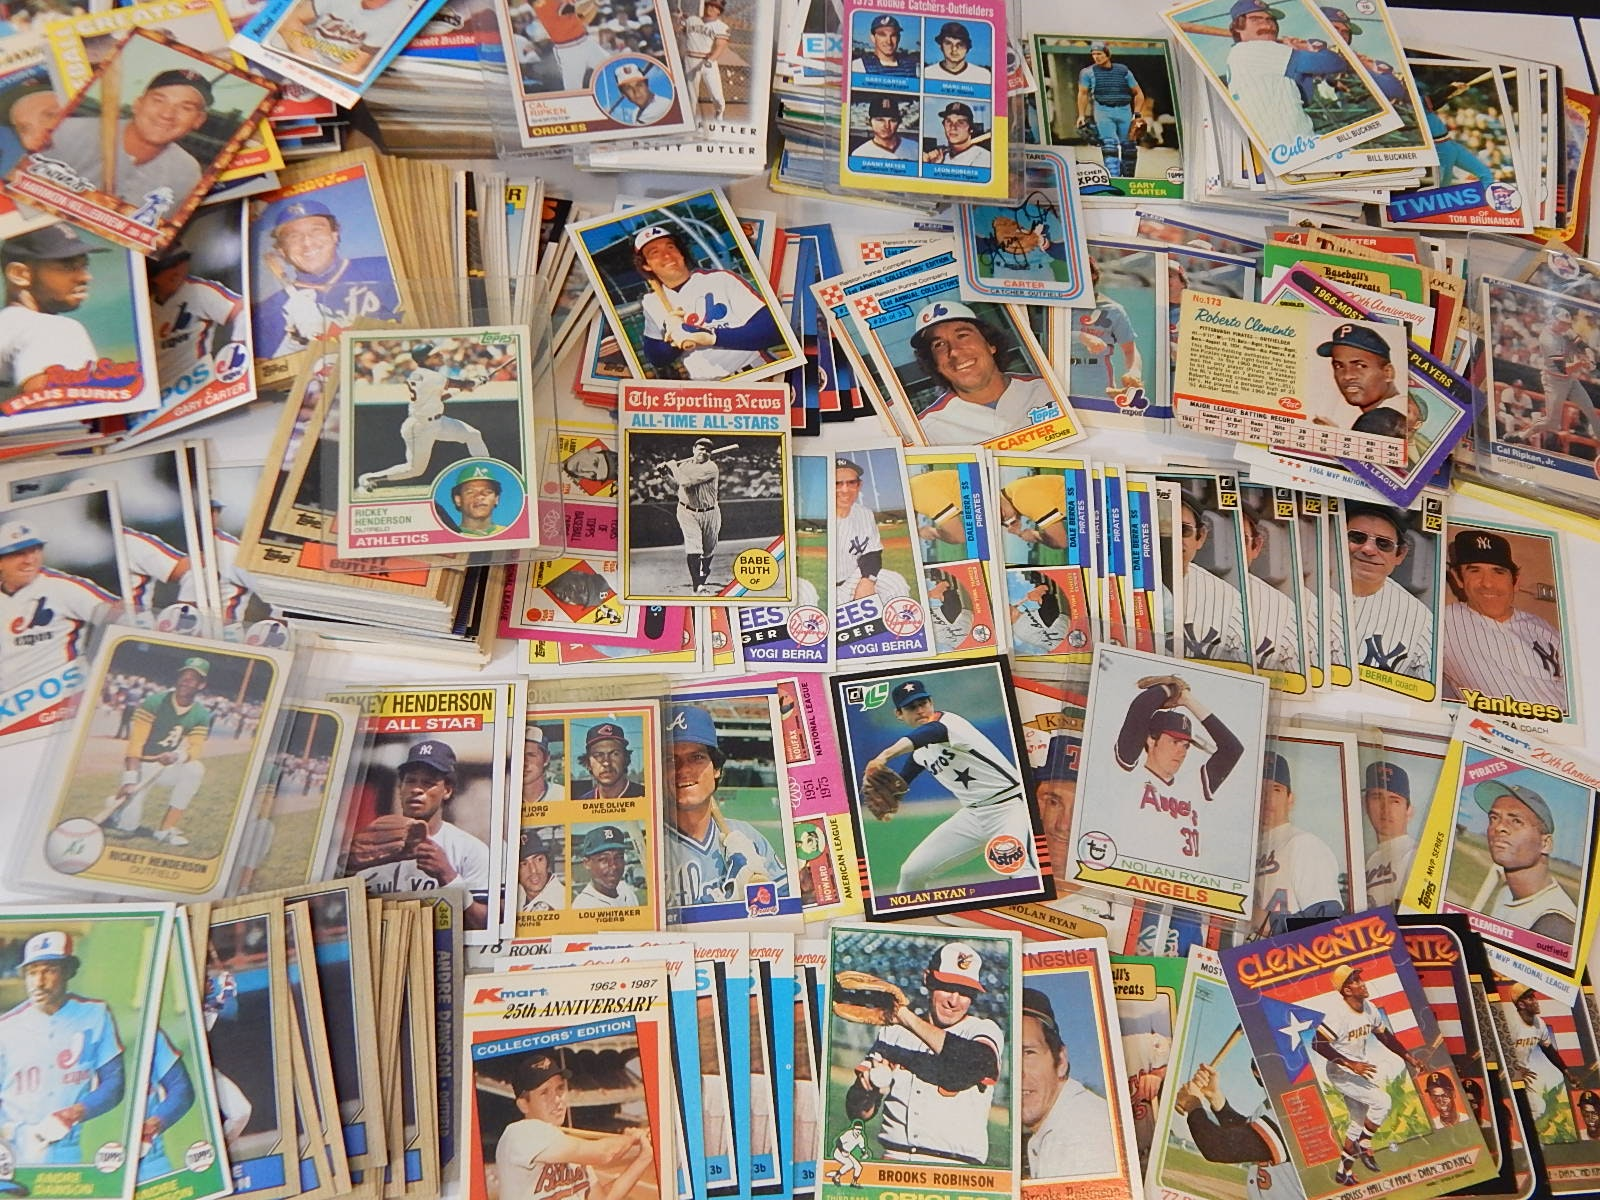 1970s and 1980s Baseball Card Collection with 1962 Post Roberto Clemente